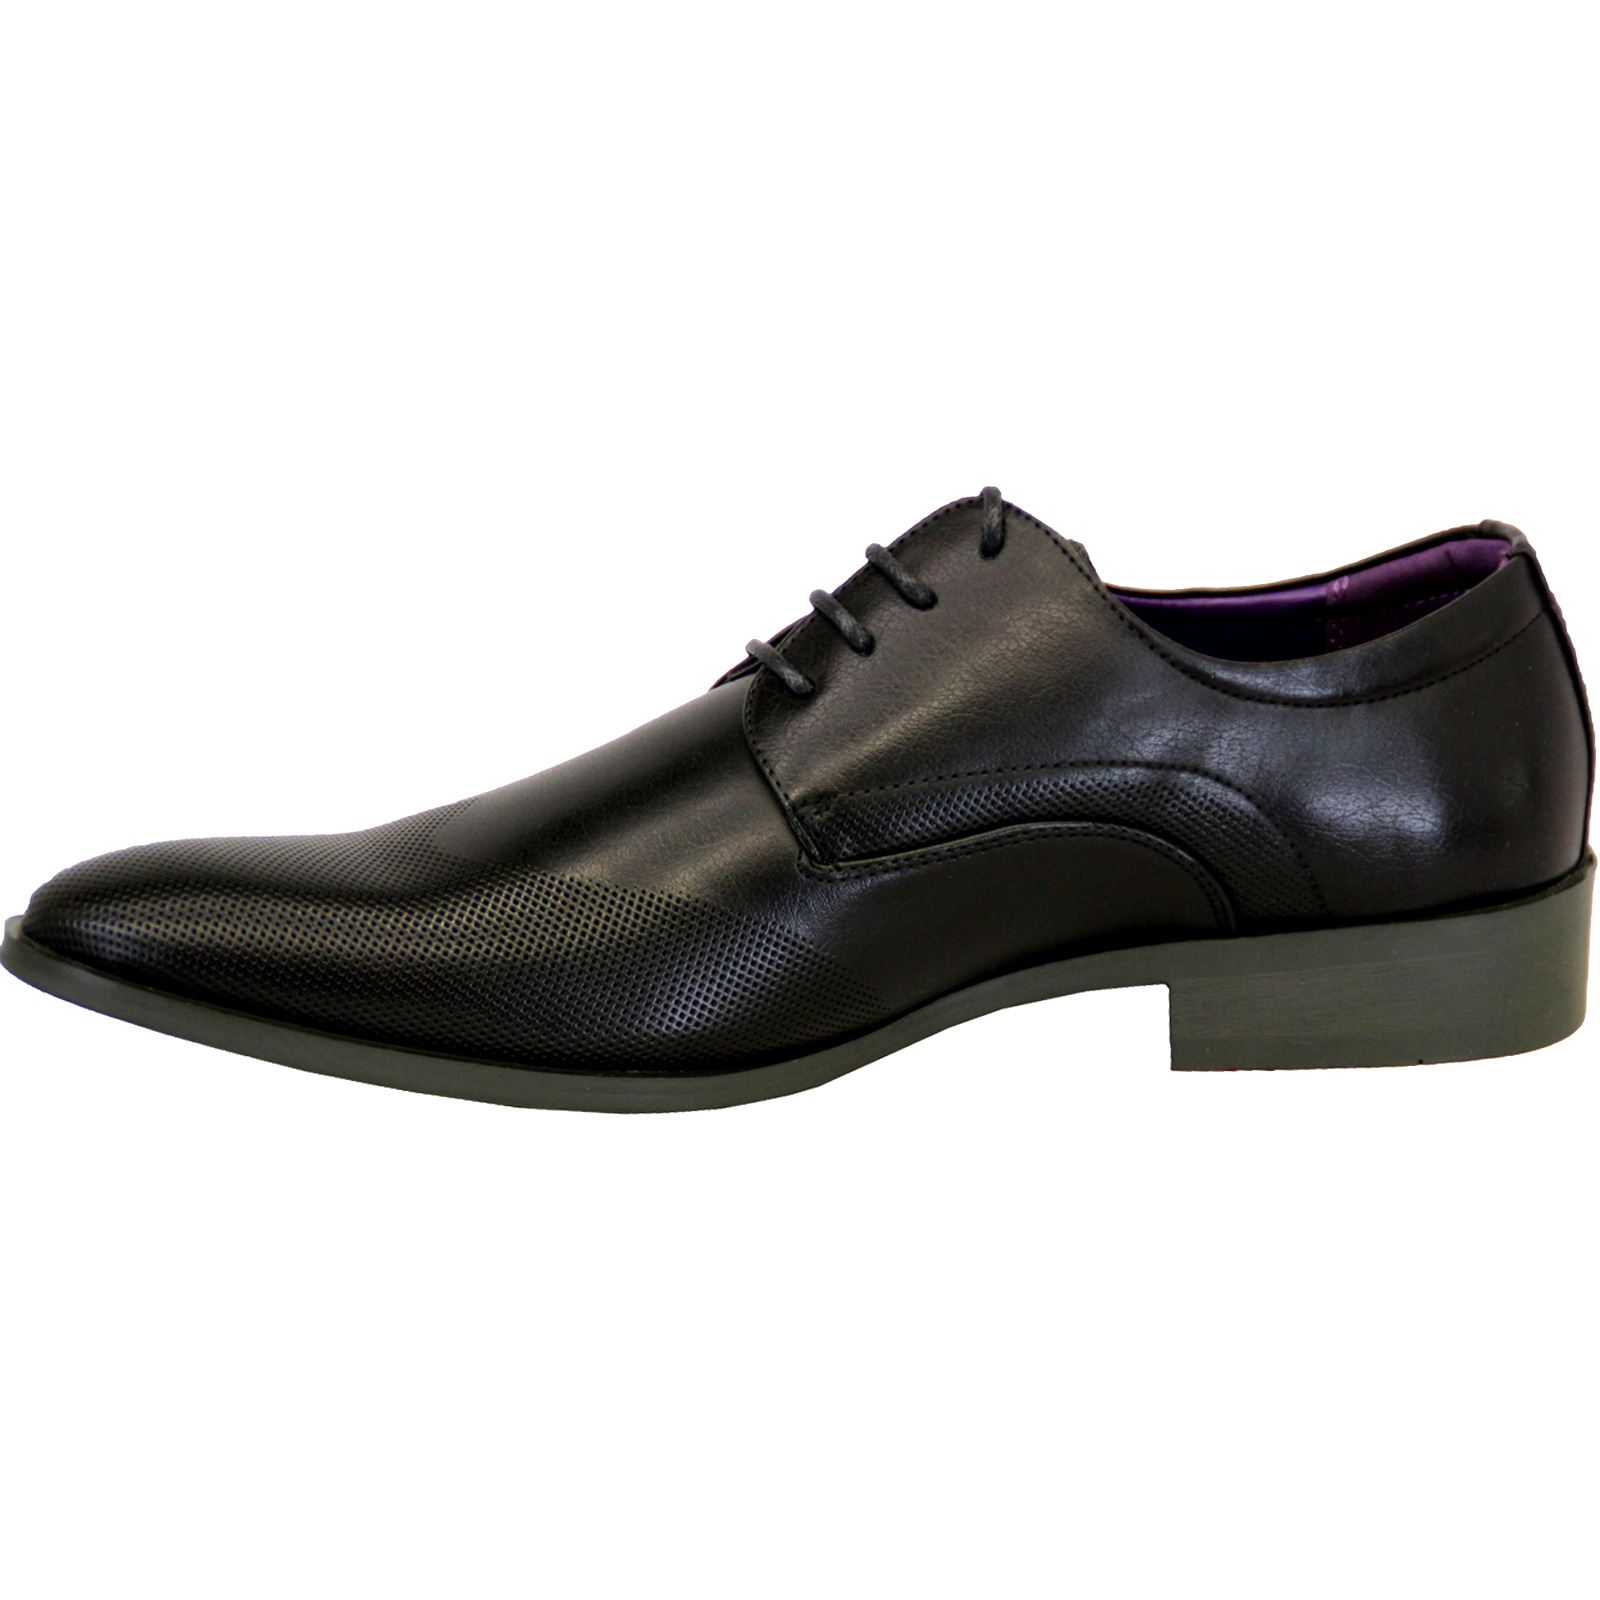 Mens-Faux-Leather-Shoes-Smart-Formal-Wedding-Office-Lace-Up-Designer-Brogues thumbnail 11